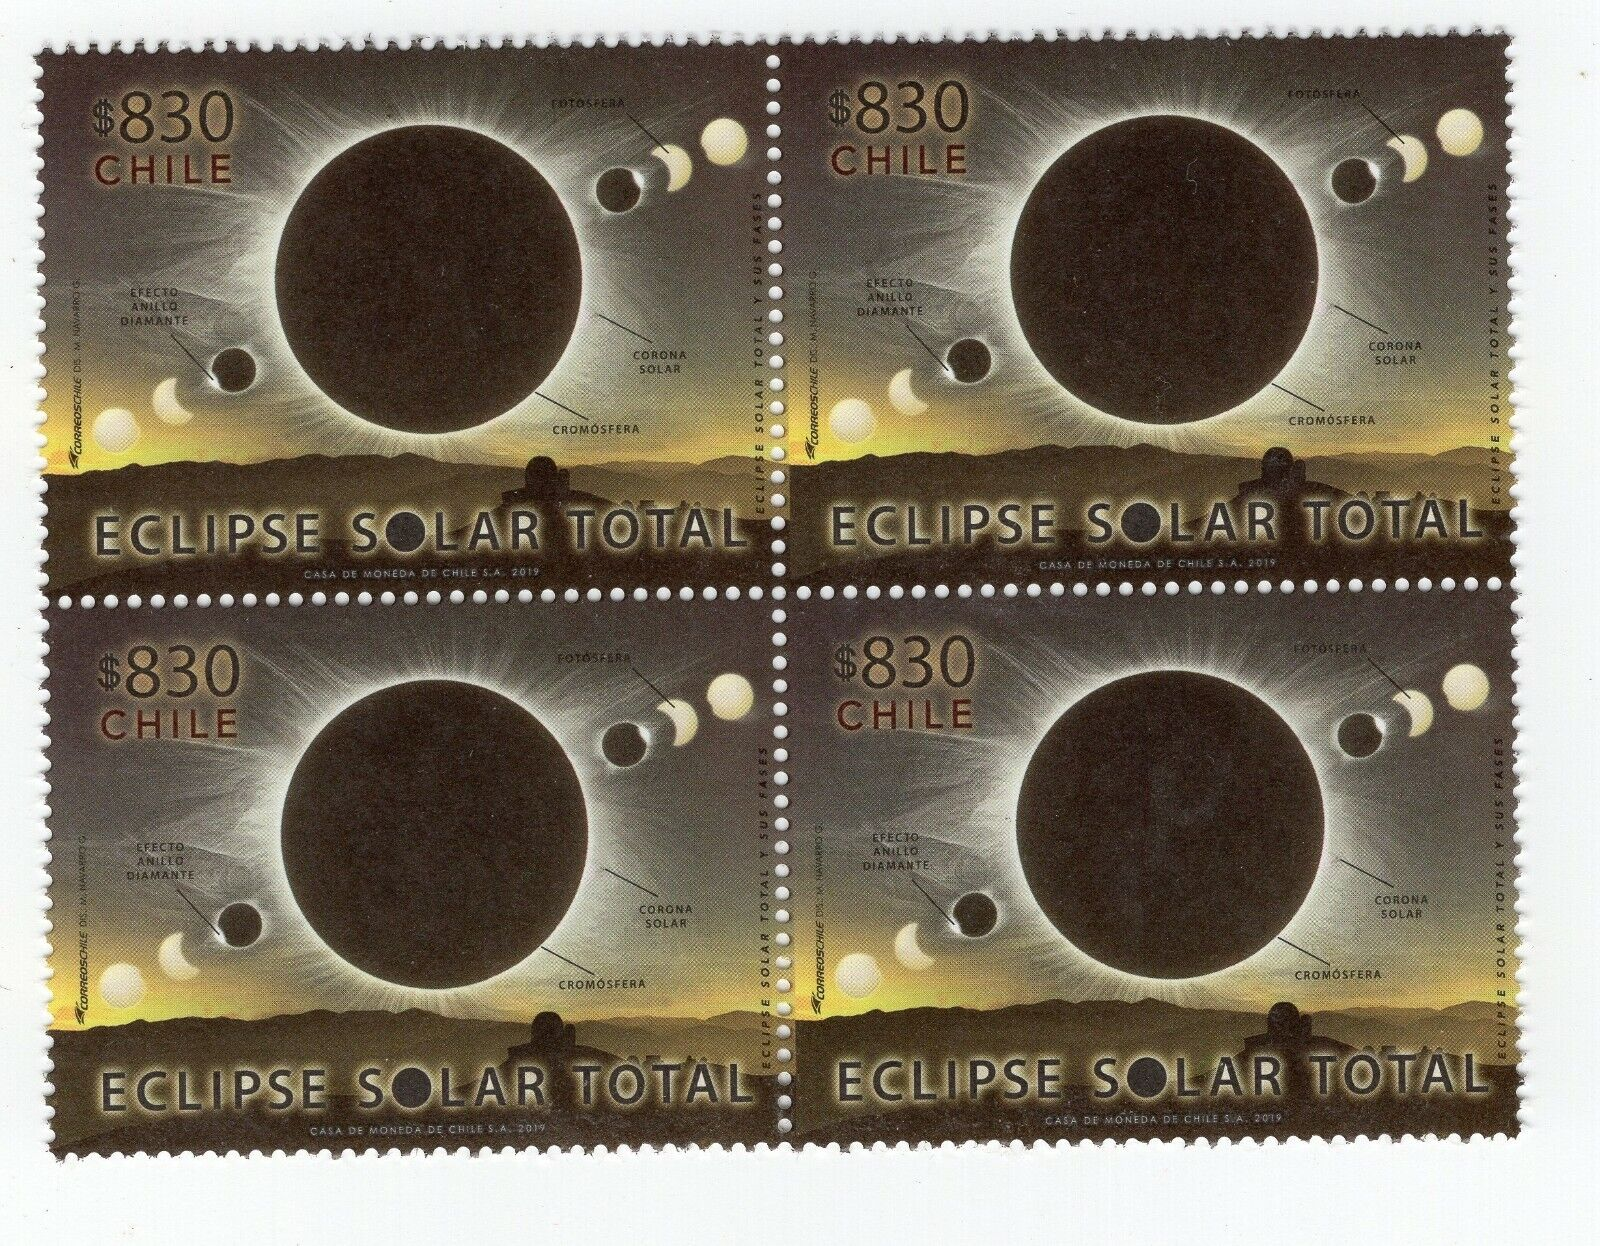 CHILE 2019 total ECLIPSE Astronomy block of 4 Moon Sun MNH